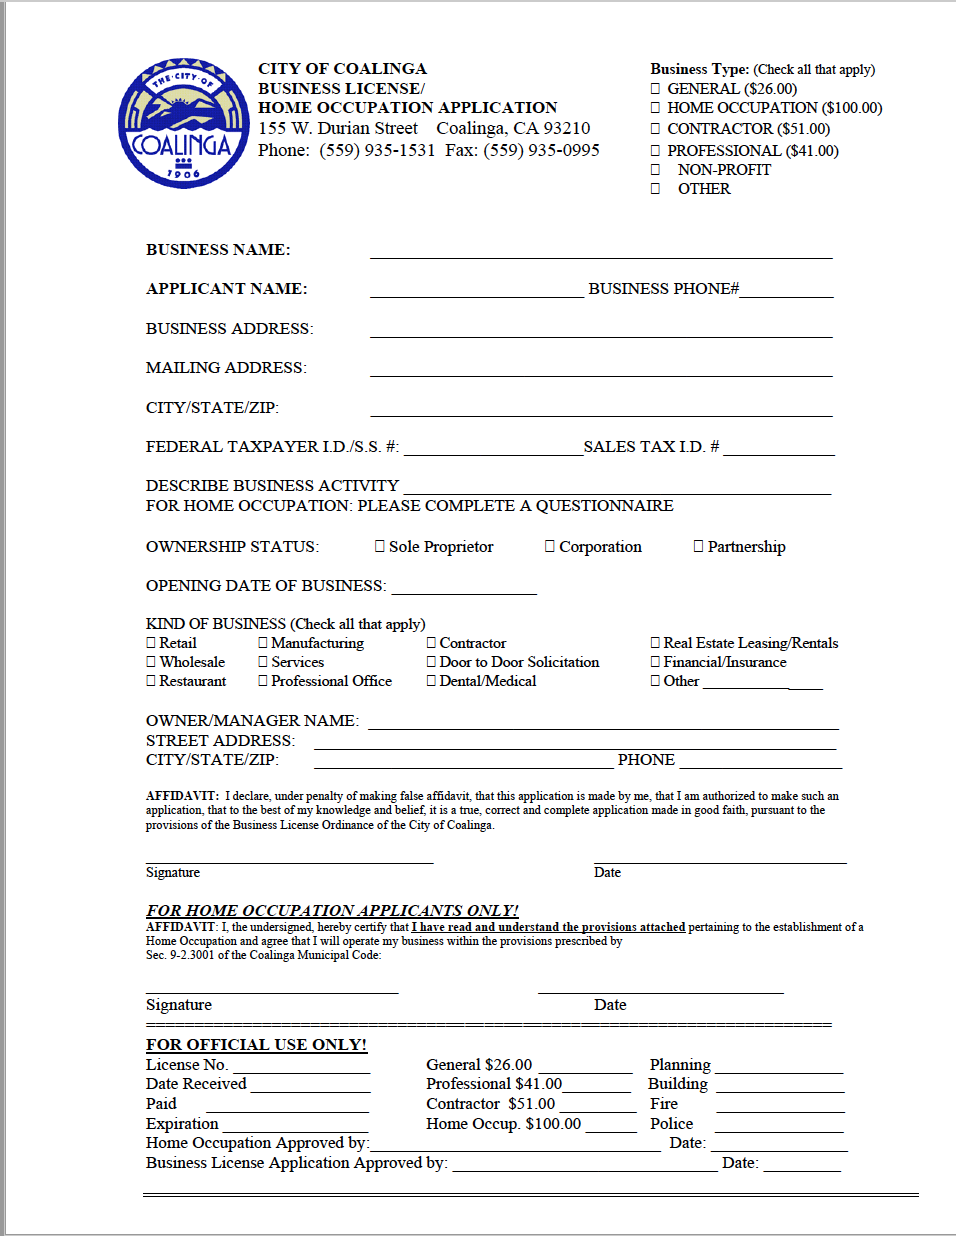 Business License Application.png